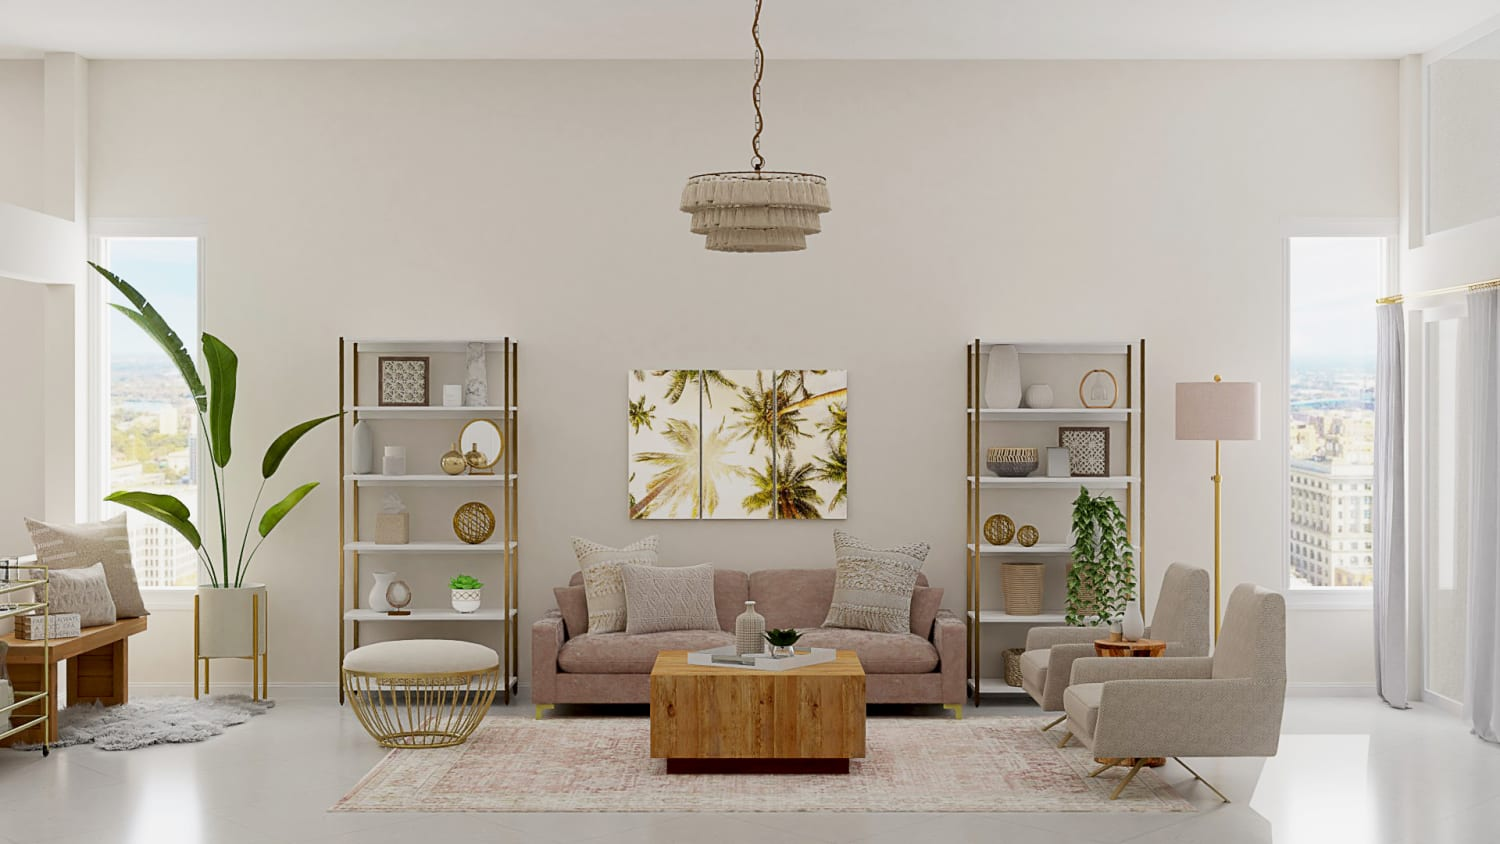 Light and Airy Pastel Accents:  Mid-Century Glam Living Room Design By Spacejoy